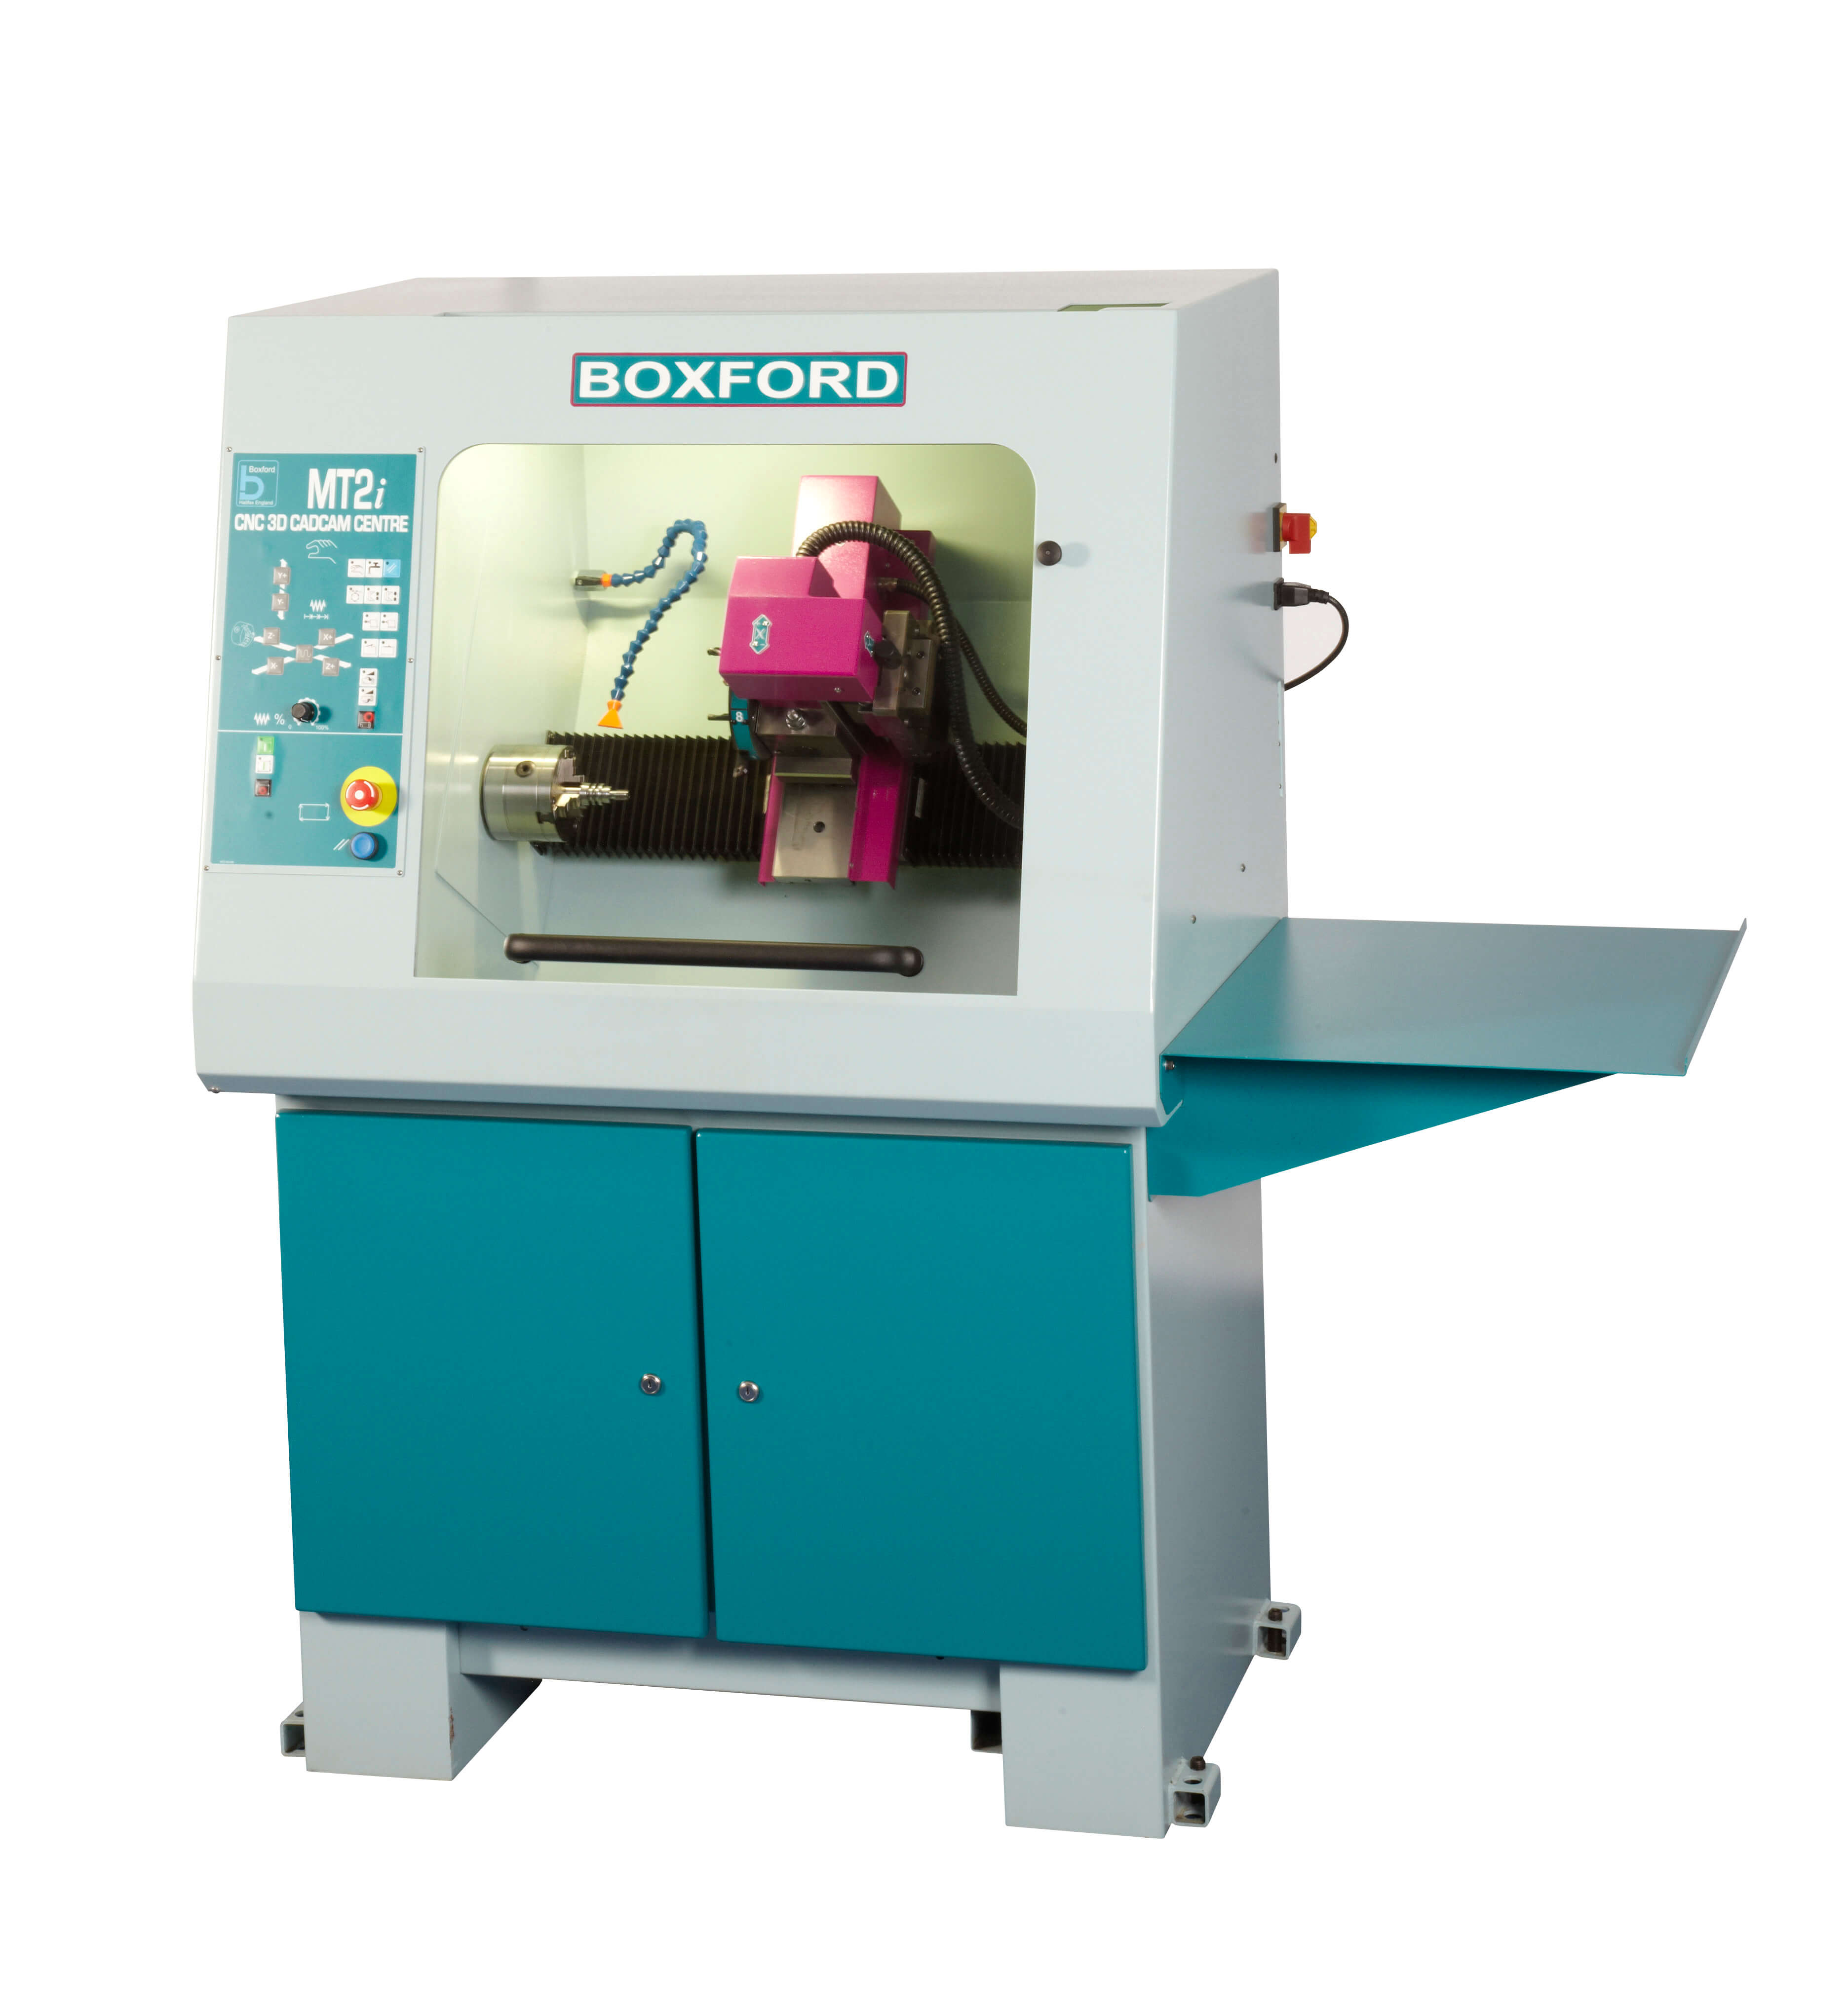 Boxford Mt2i Floor Standing Cnc Lathe And Mill Combination Machine Combination Cnc Machines Cnc Equipment Machines Power Tools Tilgear